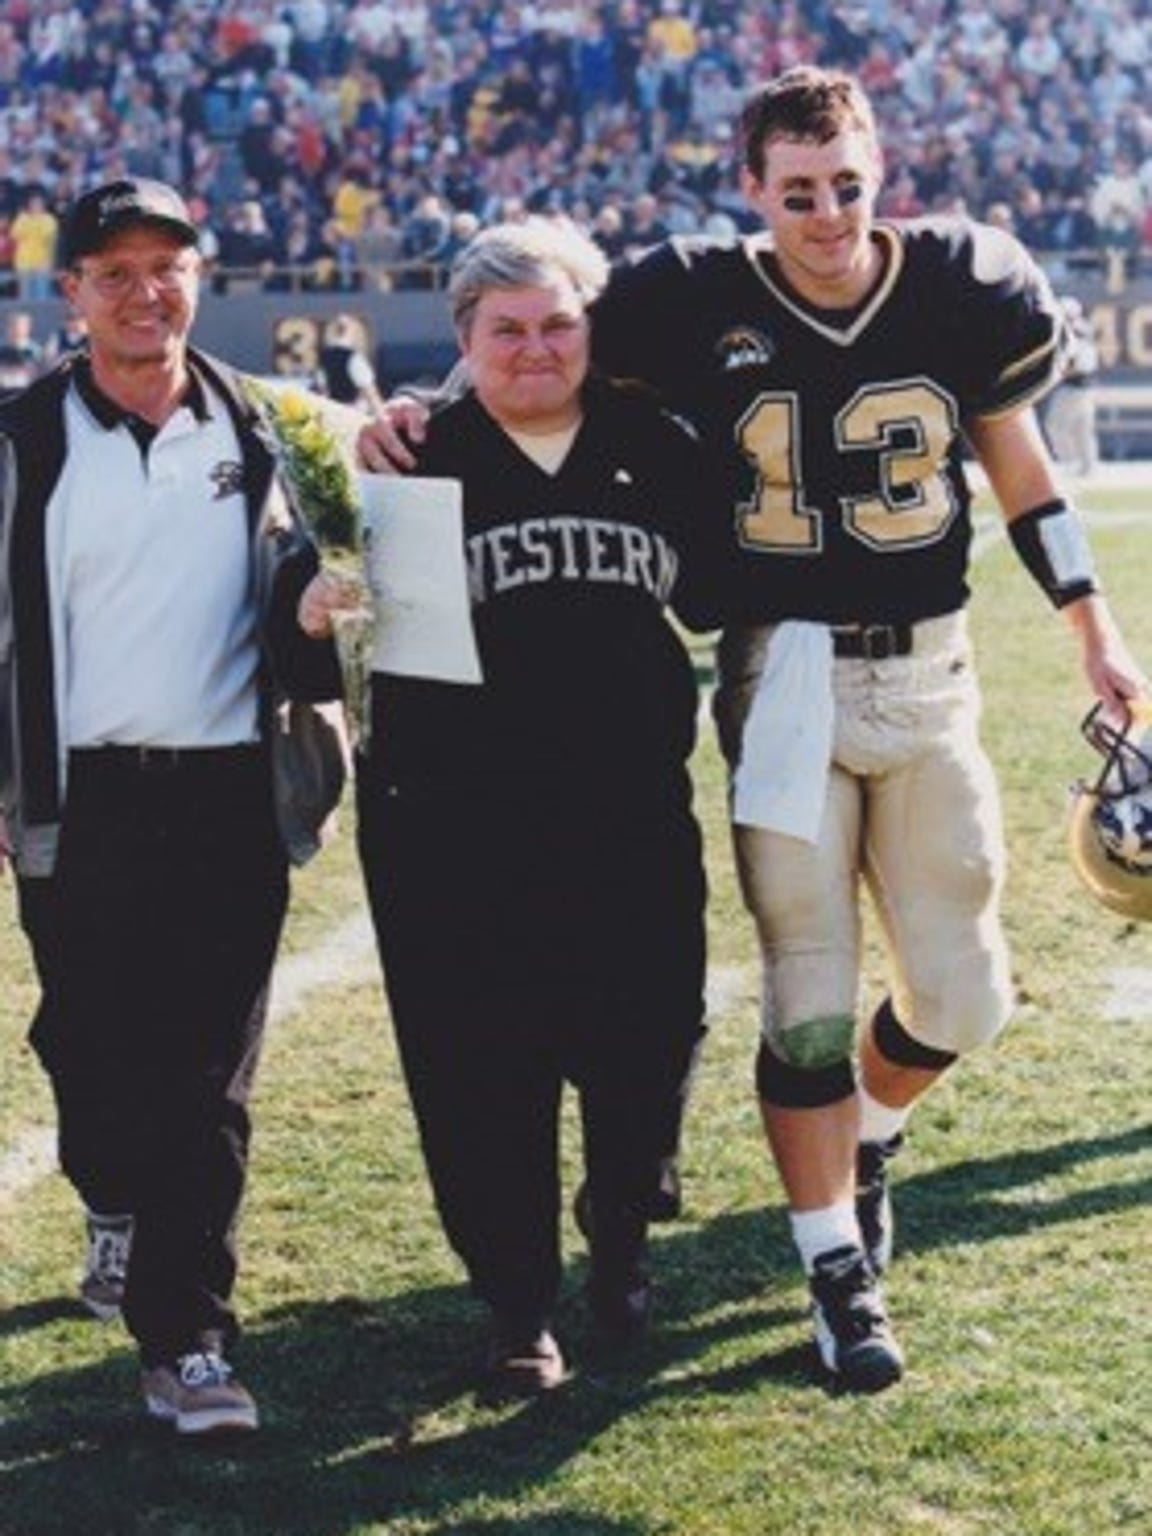 Tim Lester walks off the field at Waldo Stadium with his parents, Fred and Pat Lester, during Senior Day in 1999.